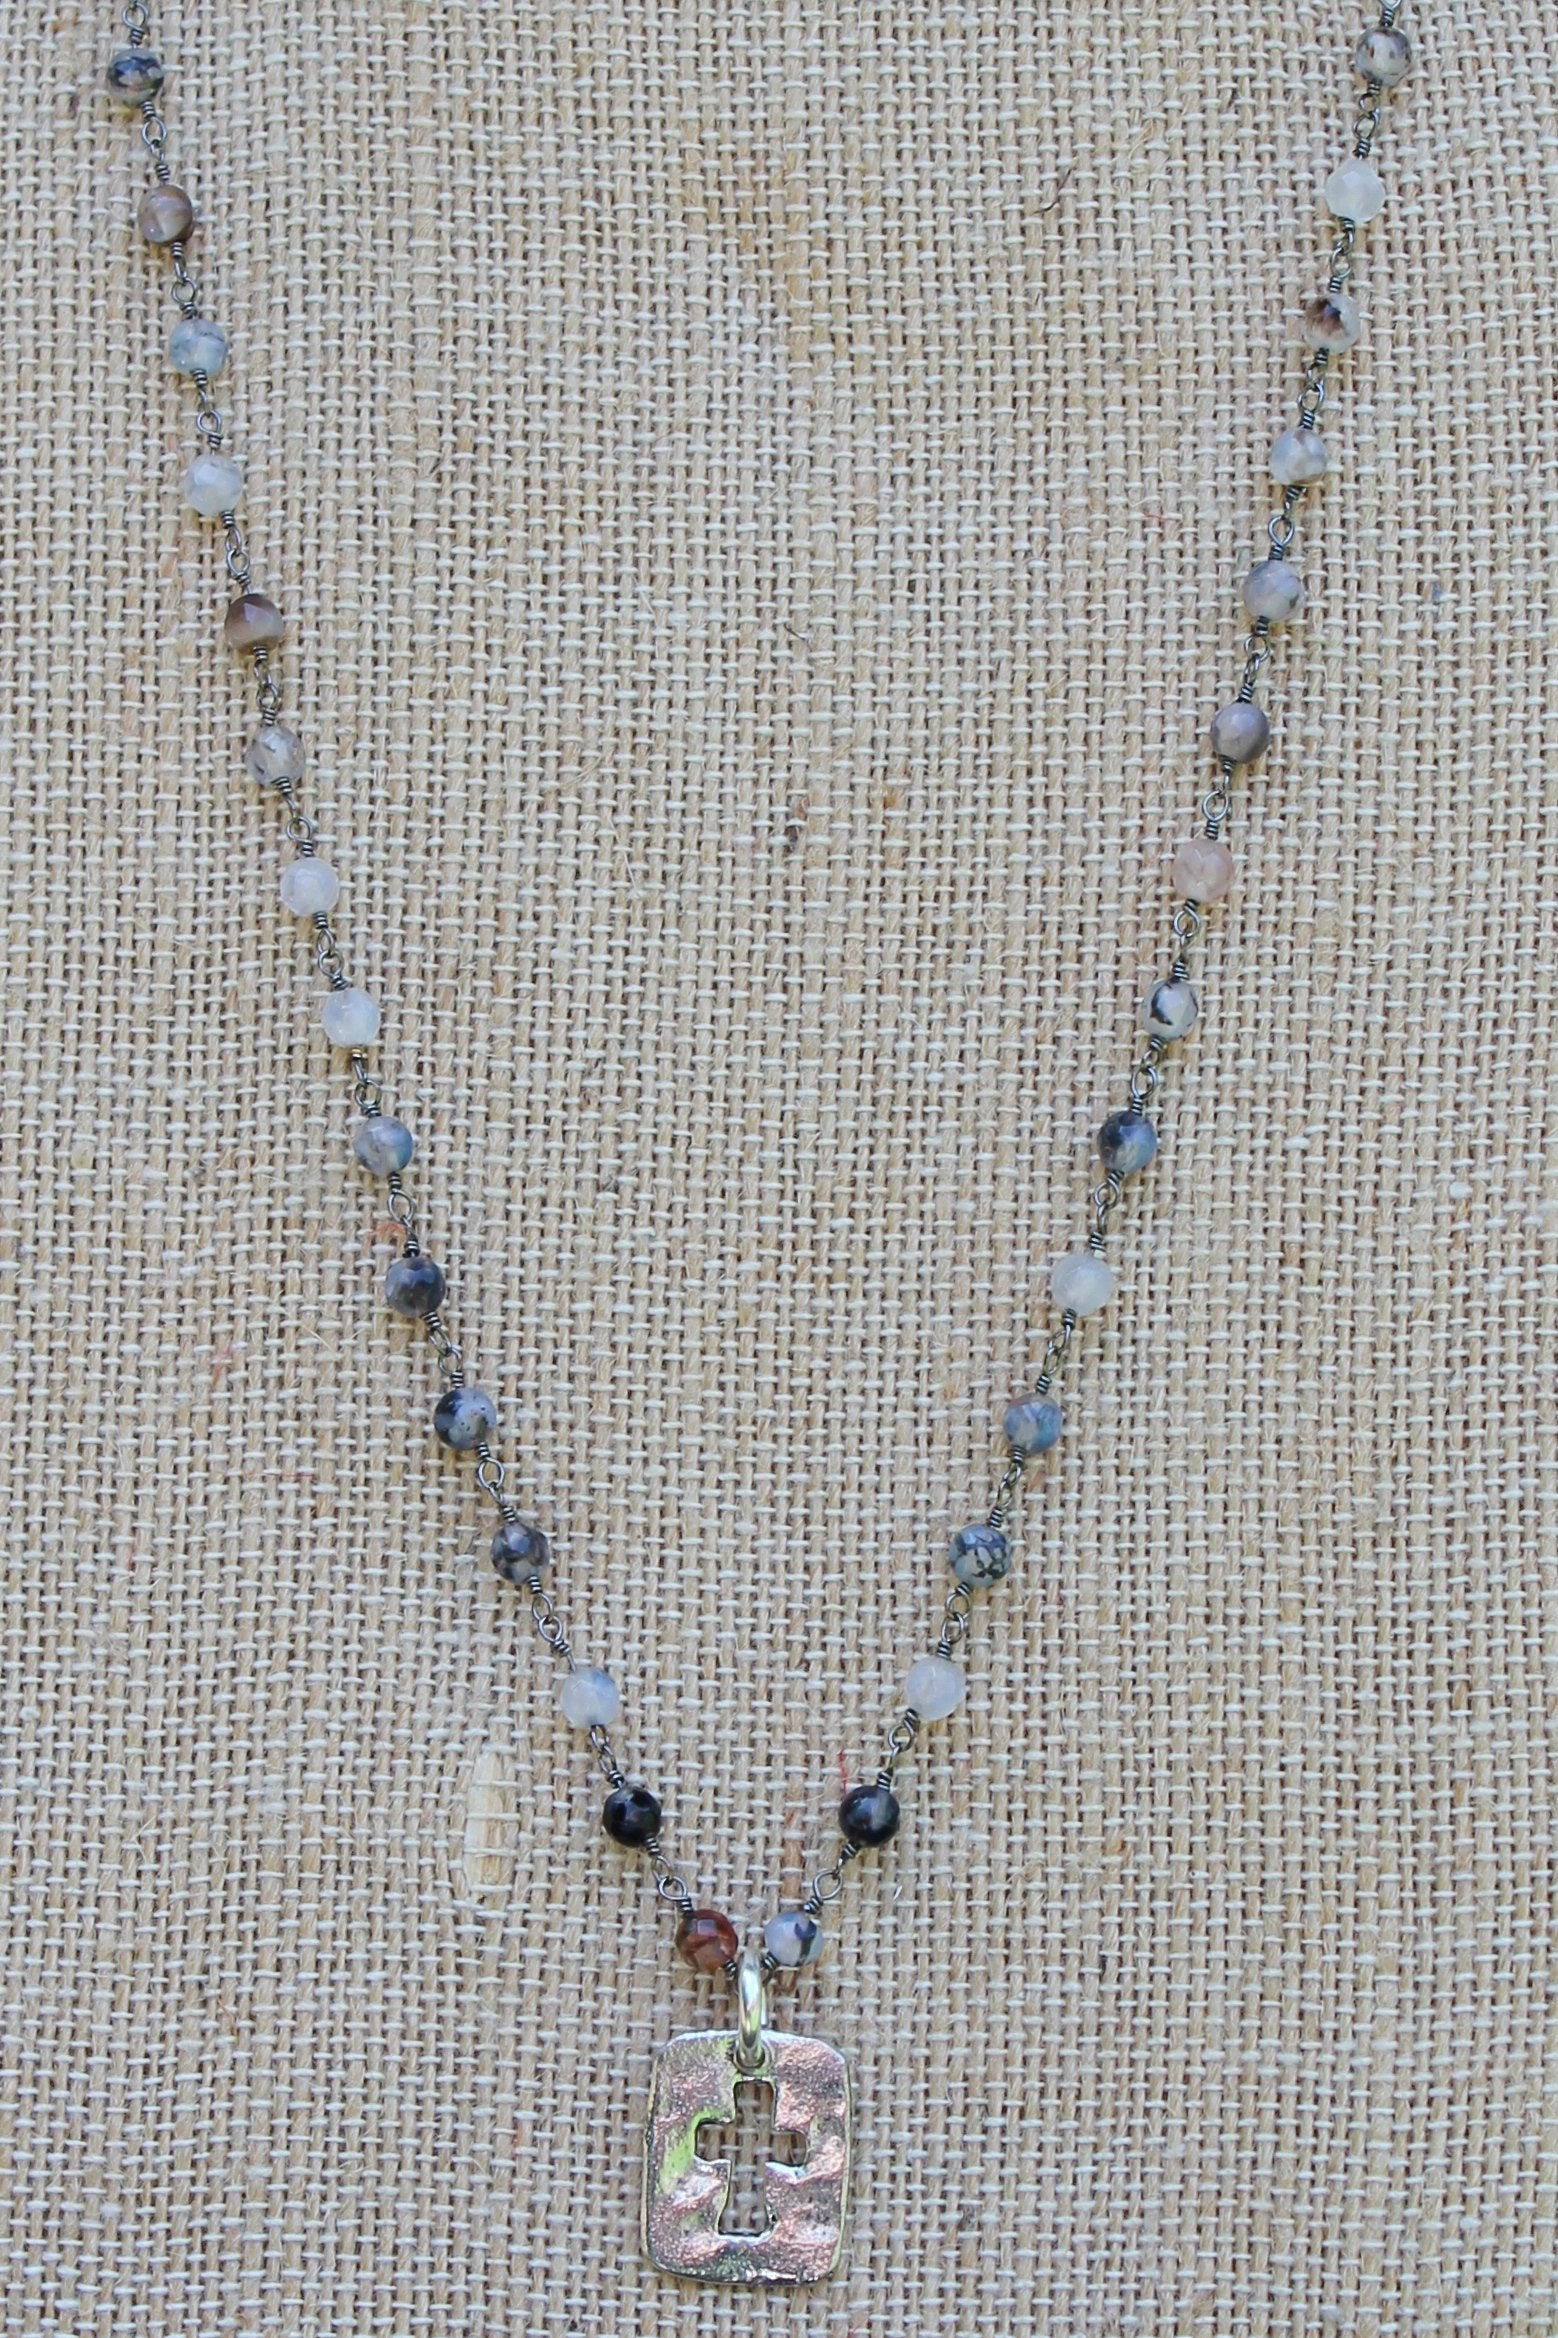 N109PB; Small Pewter Open Cross; 3mm Black Agate Silvertone Chain; Approximately 17 inches; ; ; ; Majestees